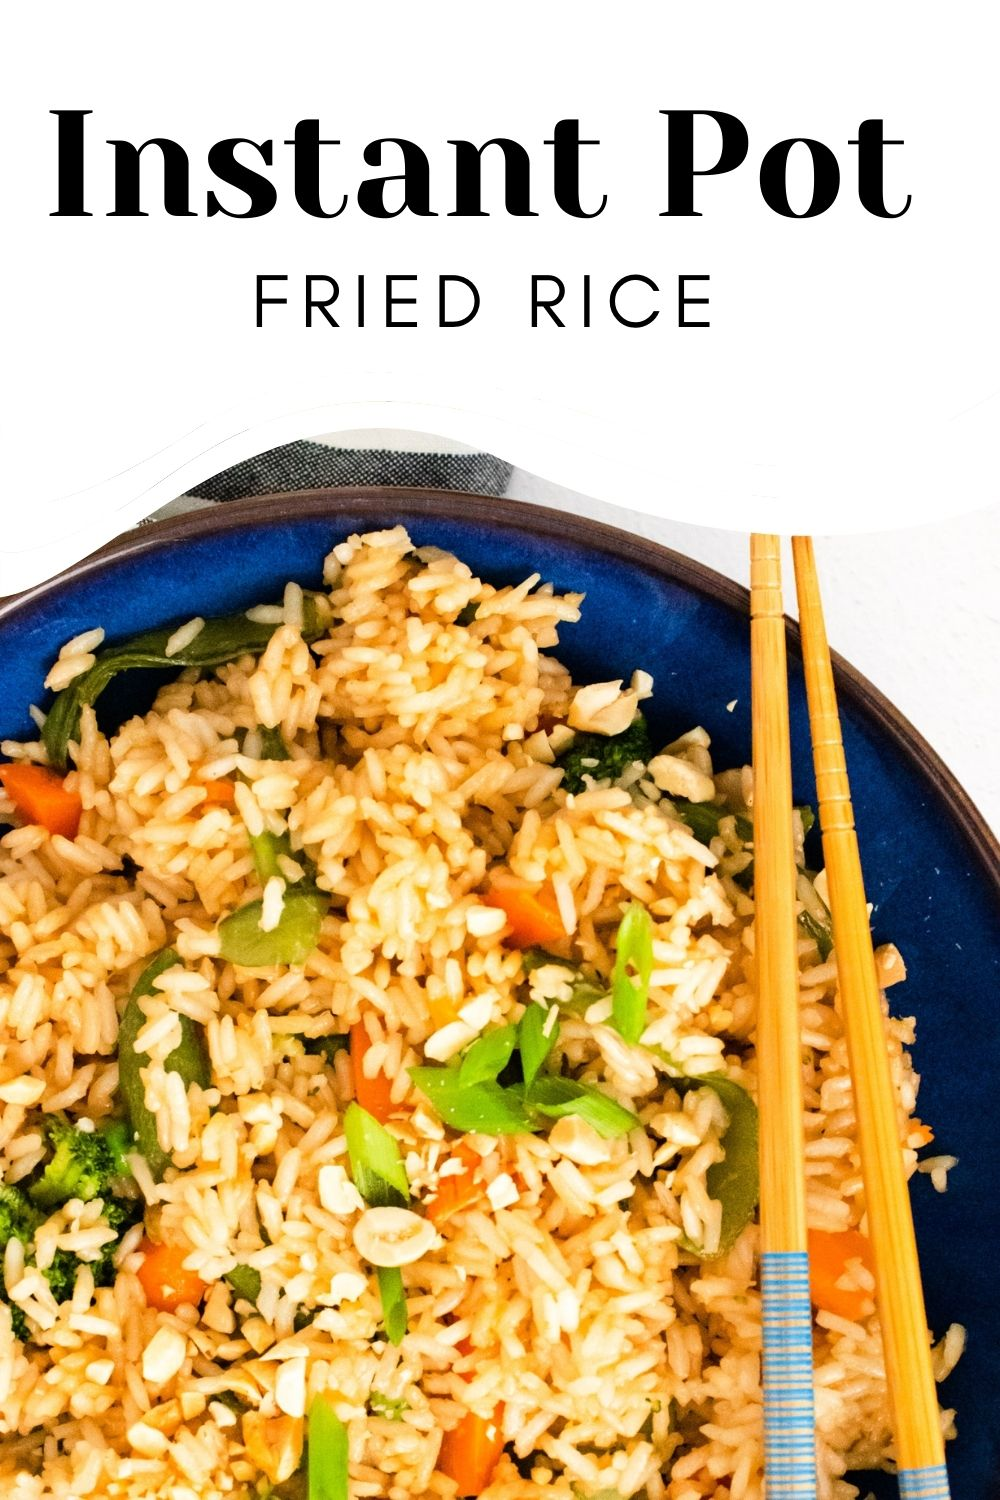 Instant Pot Fried Rice with logo.